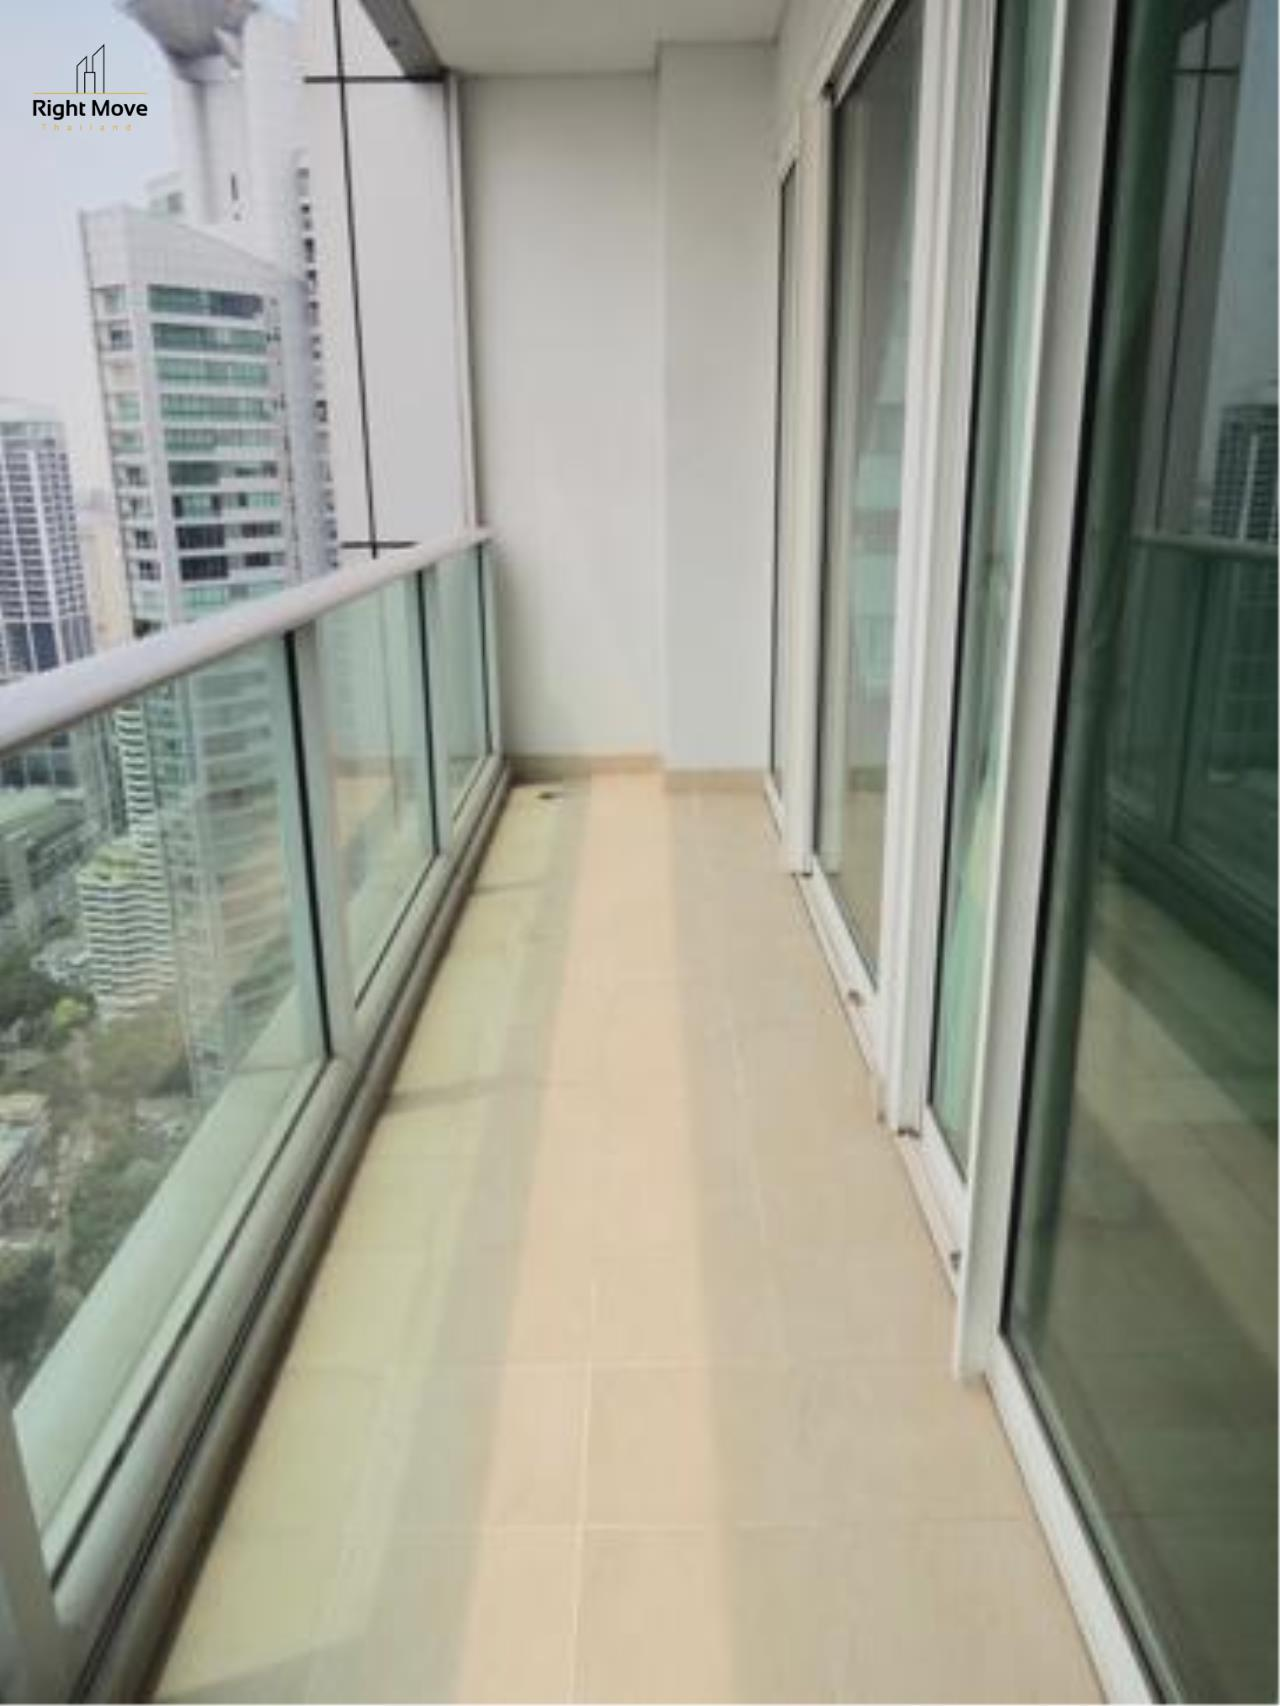 Right Move Thailand Agency's CA4023 Millennium Residence For Rent 120,000 THB -  3 Bedrooms - 193.5 Sqm 12